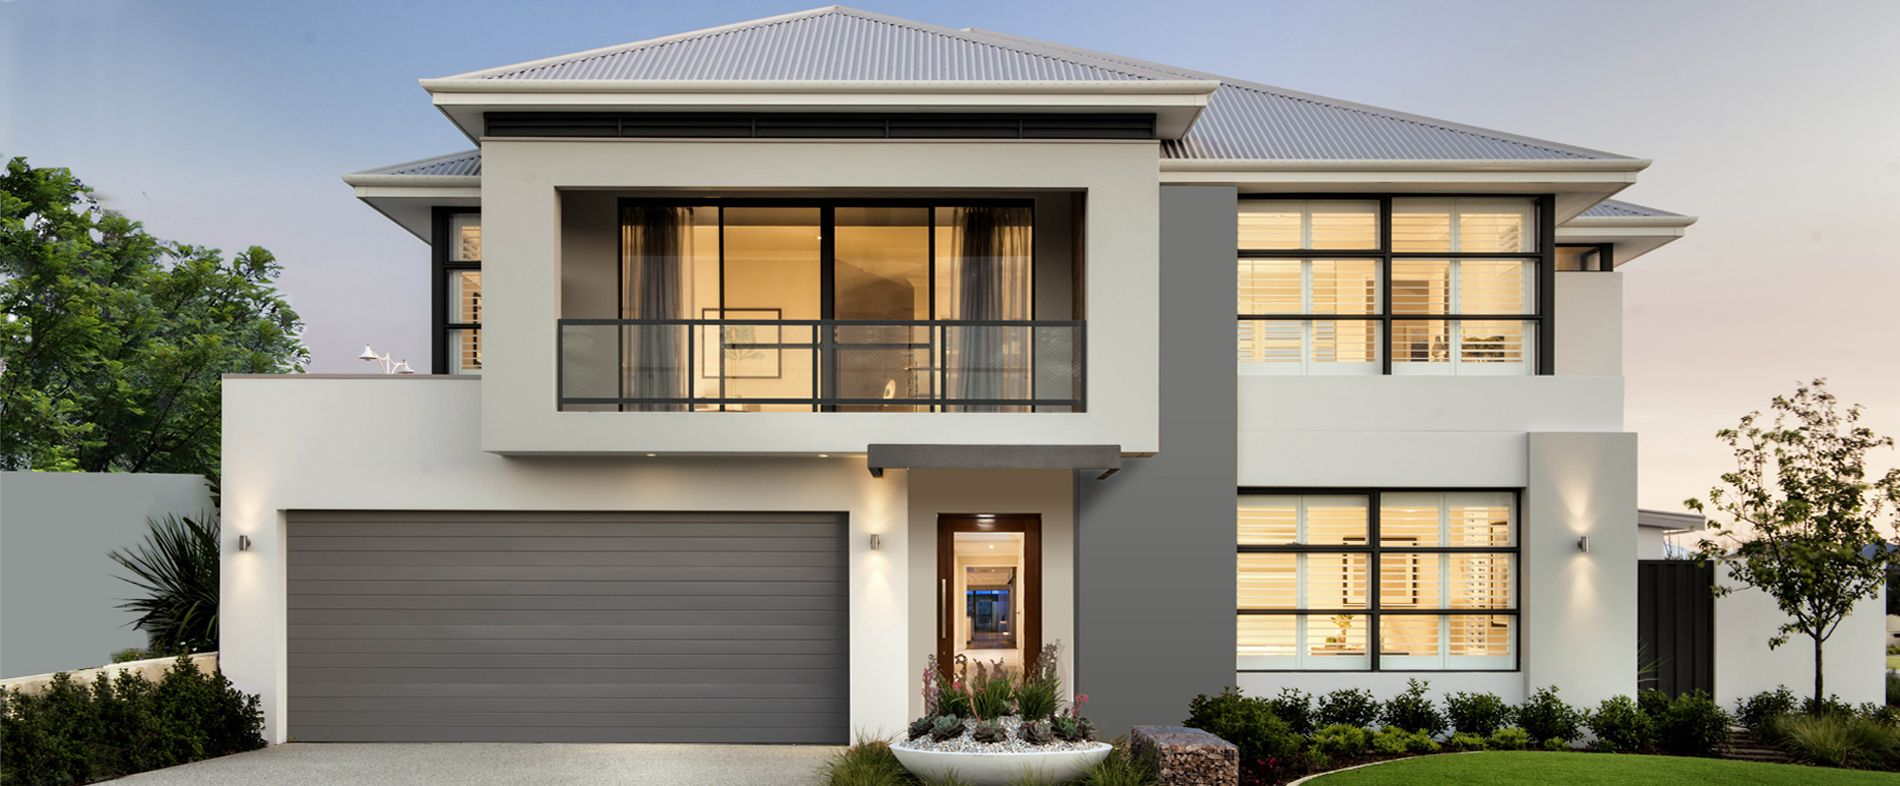 House · Our Luxury Home Designs Perth ...